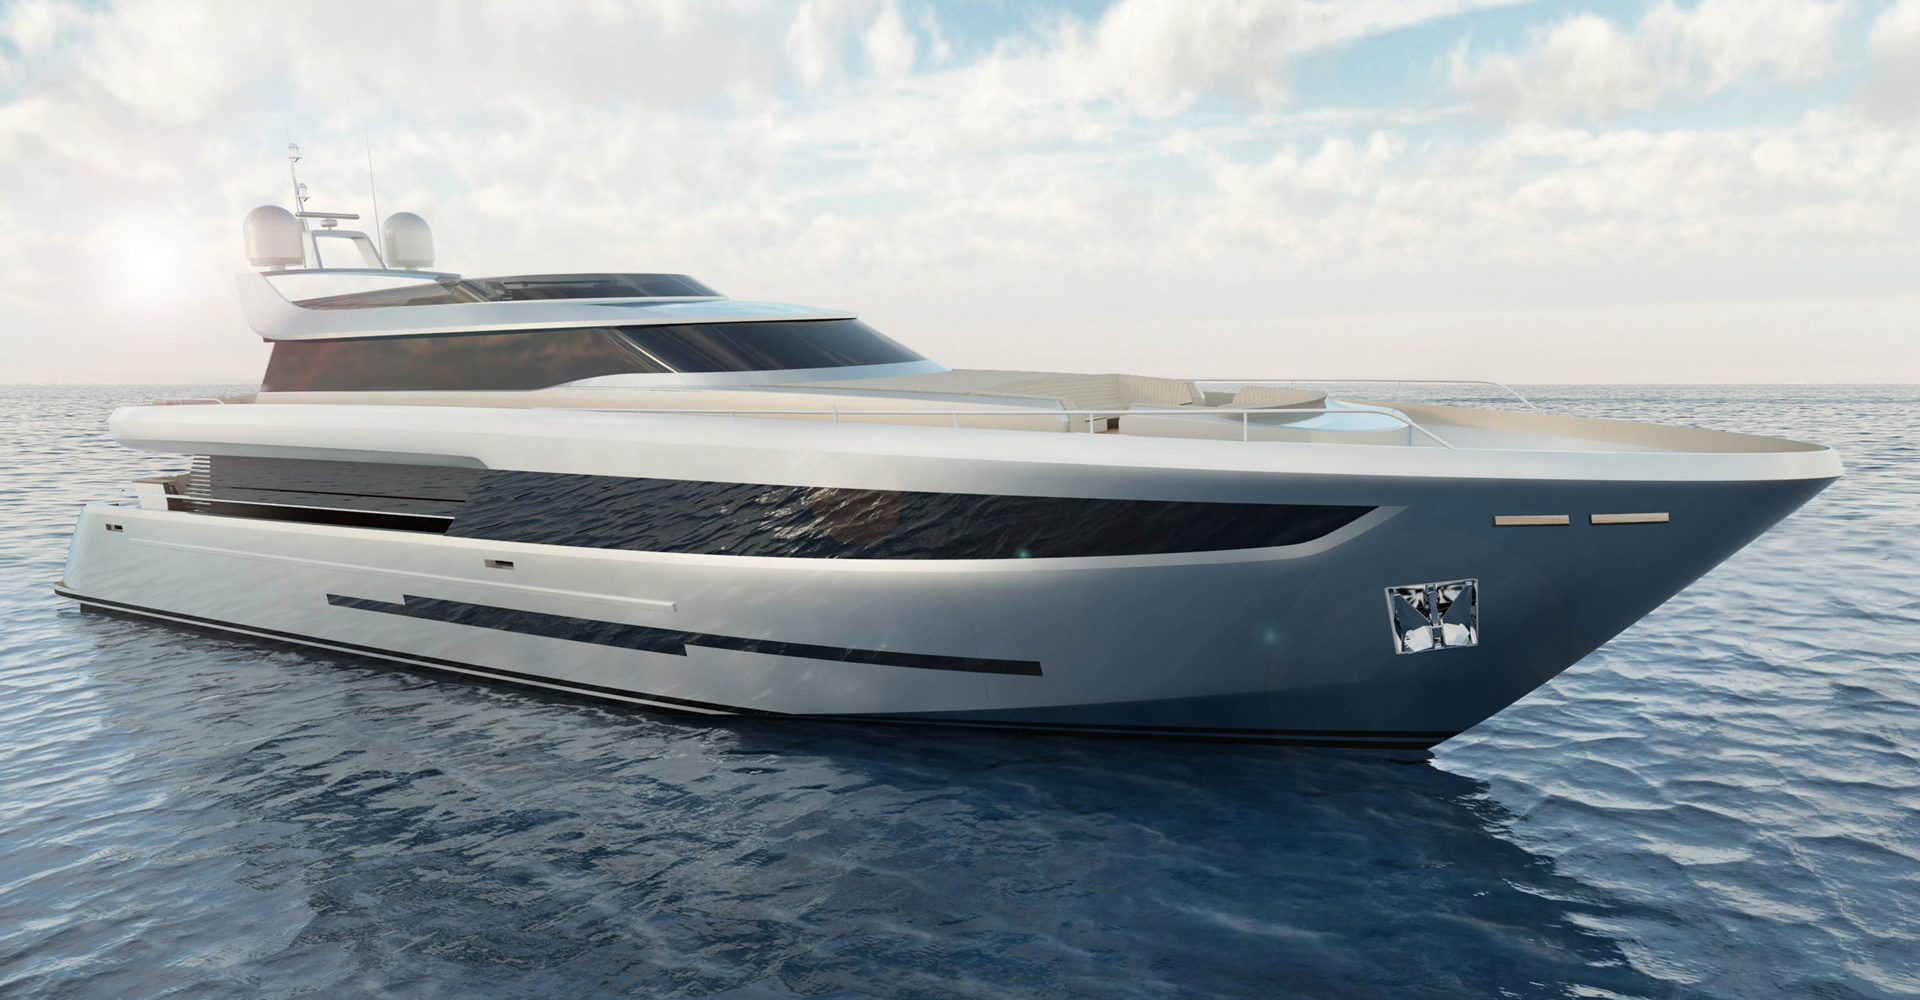 Exterior render for a 42m motor yacht concept